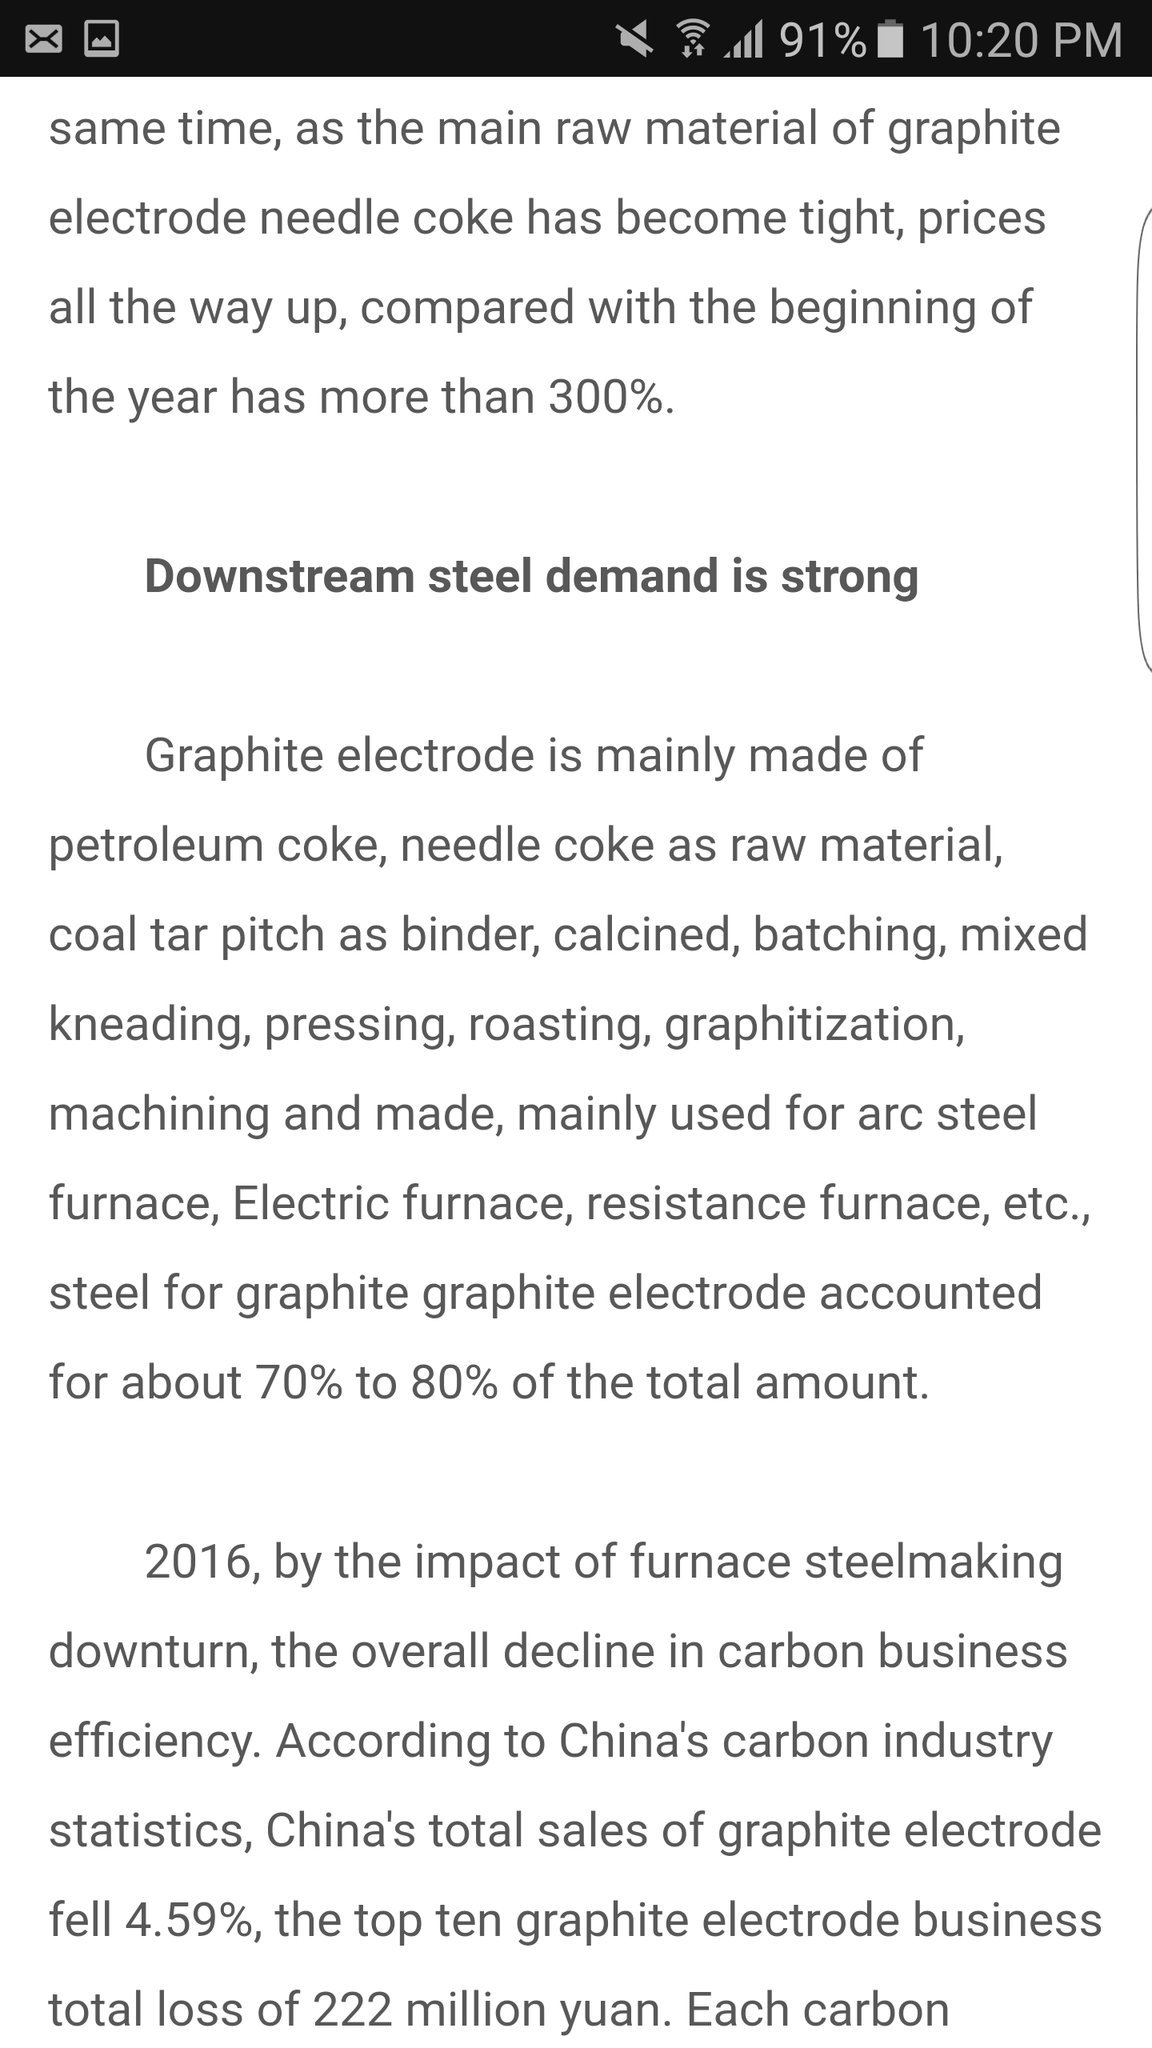 michael langford on twitter interesting article graphite electrode china supply pricing for batteries lithium cobalt highest profits